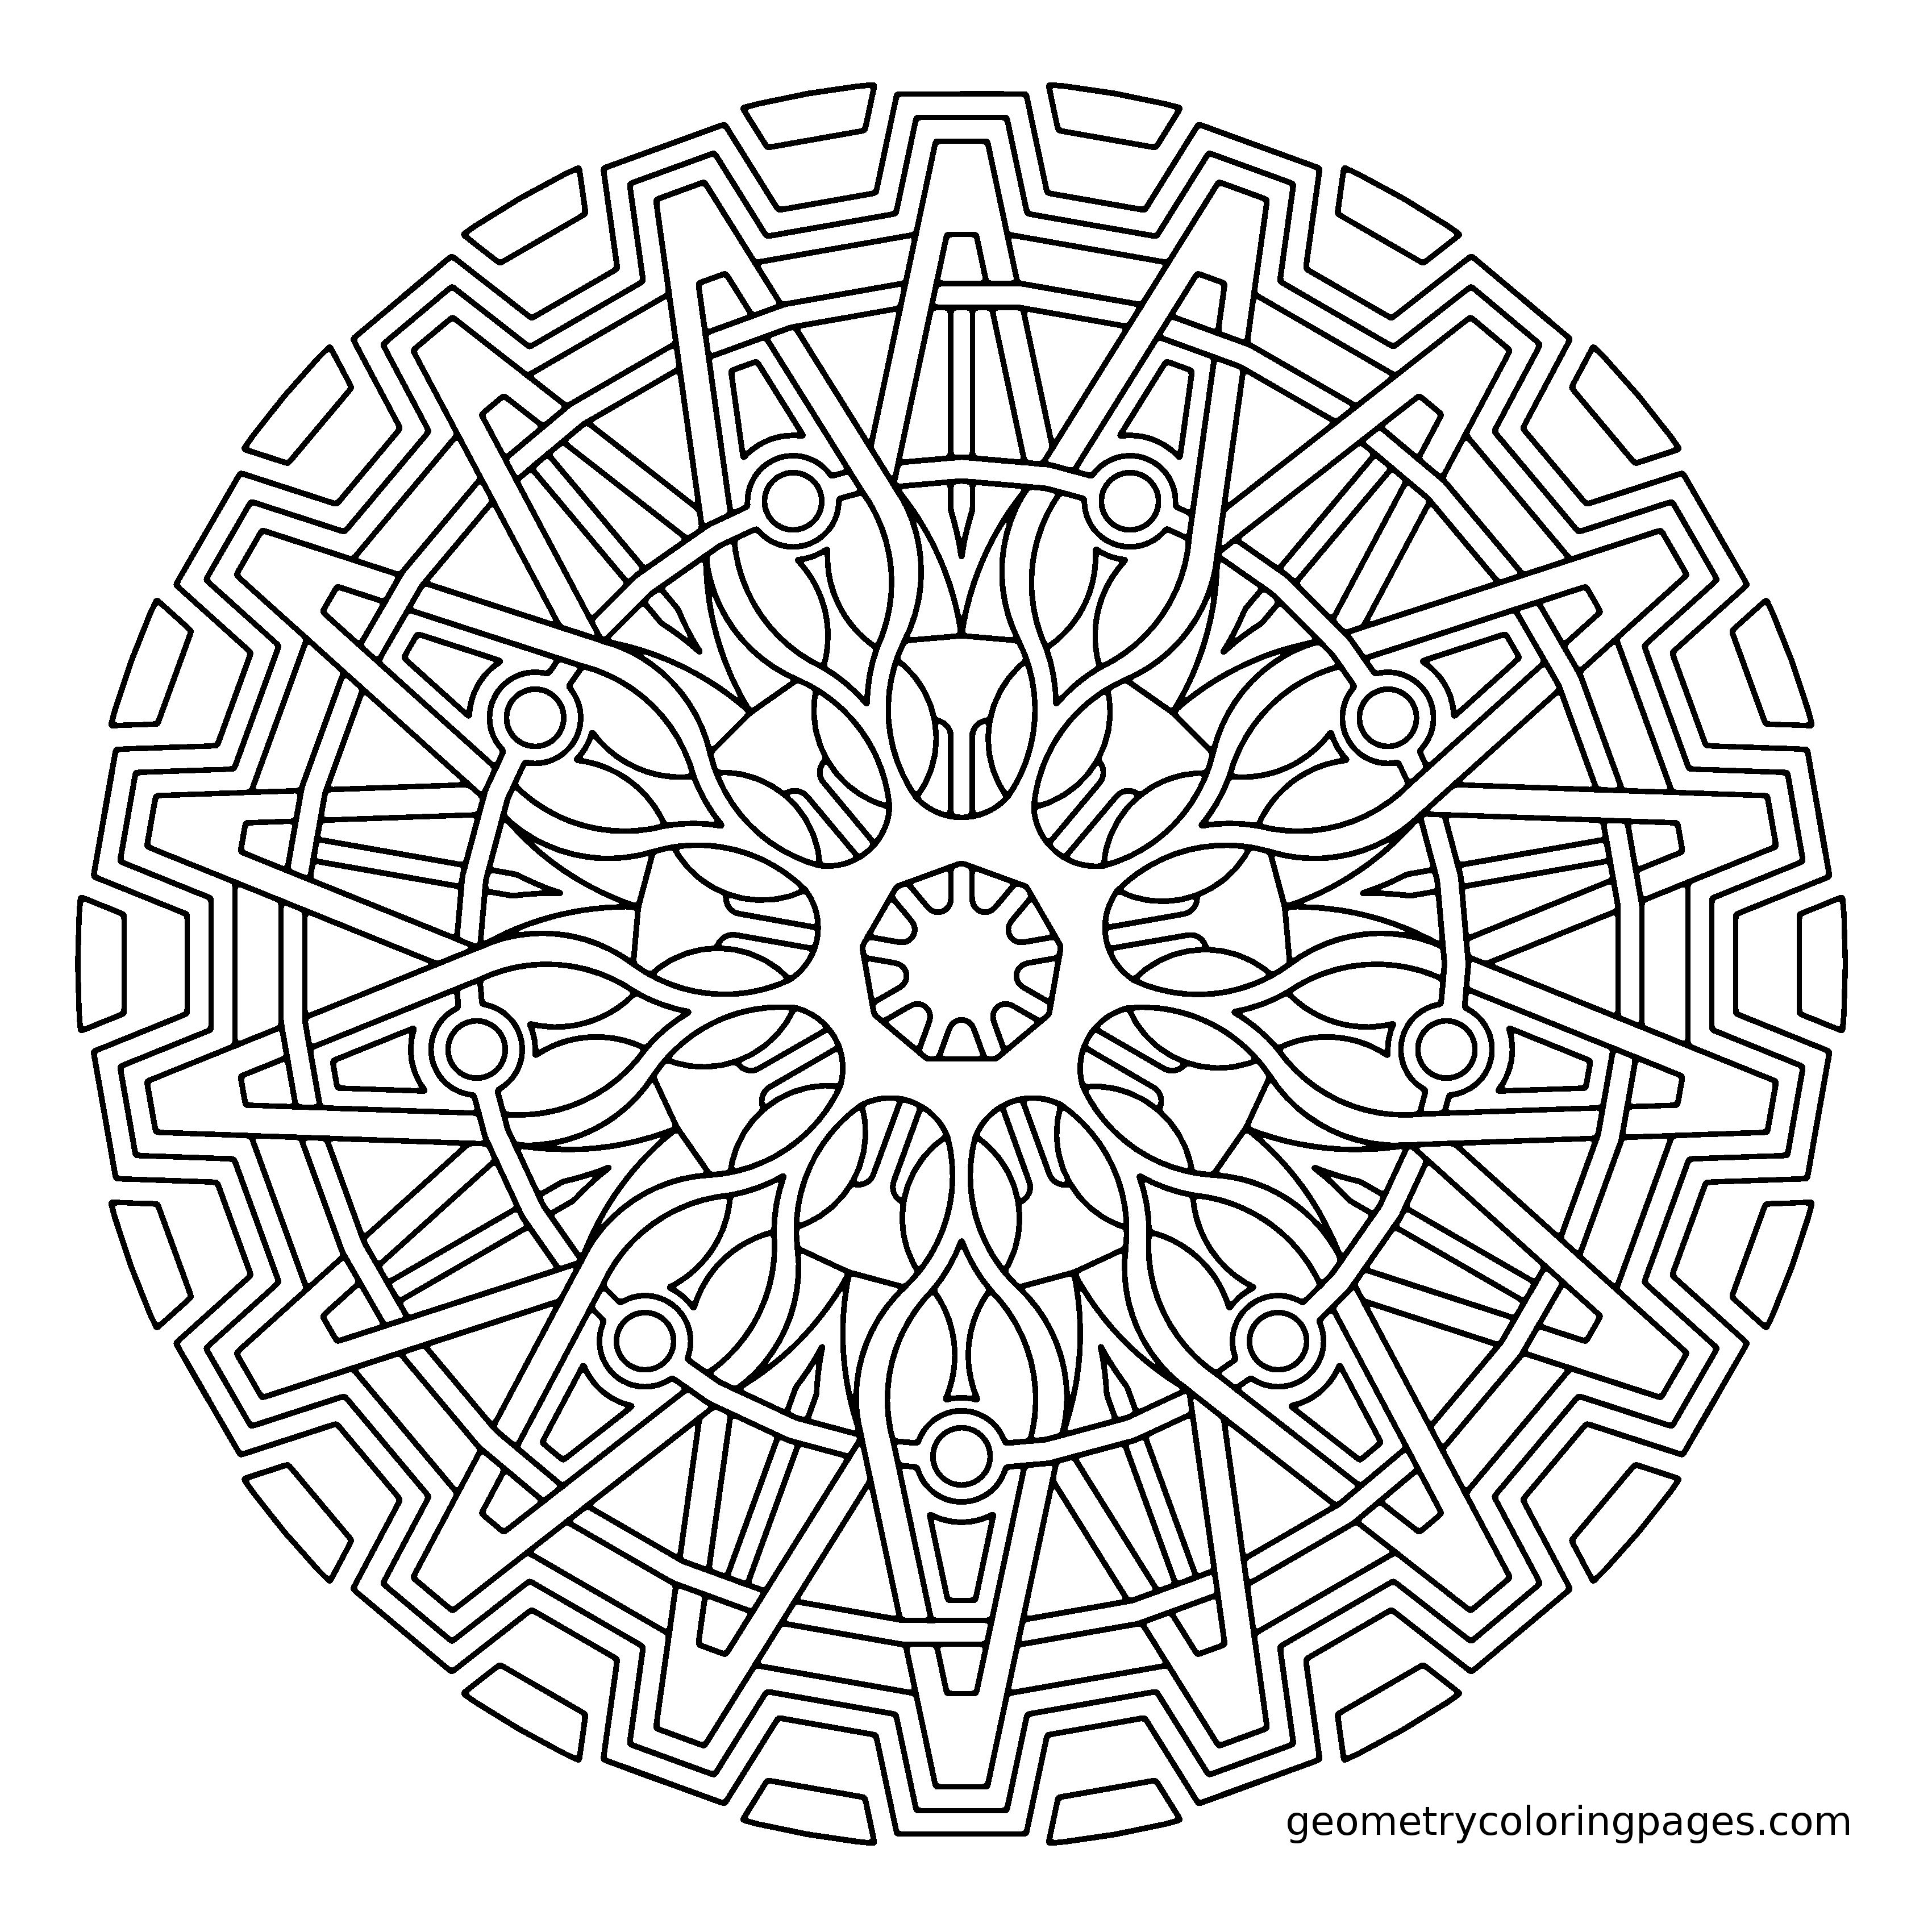 Coloring Page Origin Cog From GeometrycoloringpagesCom  Adult